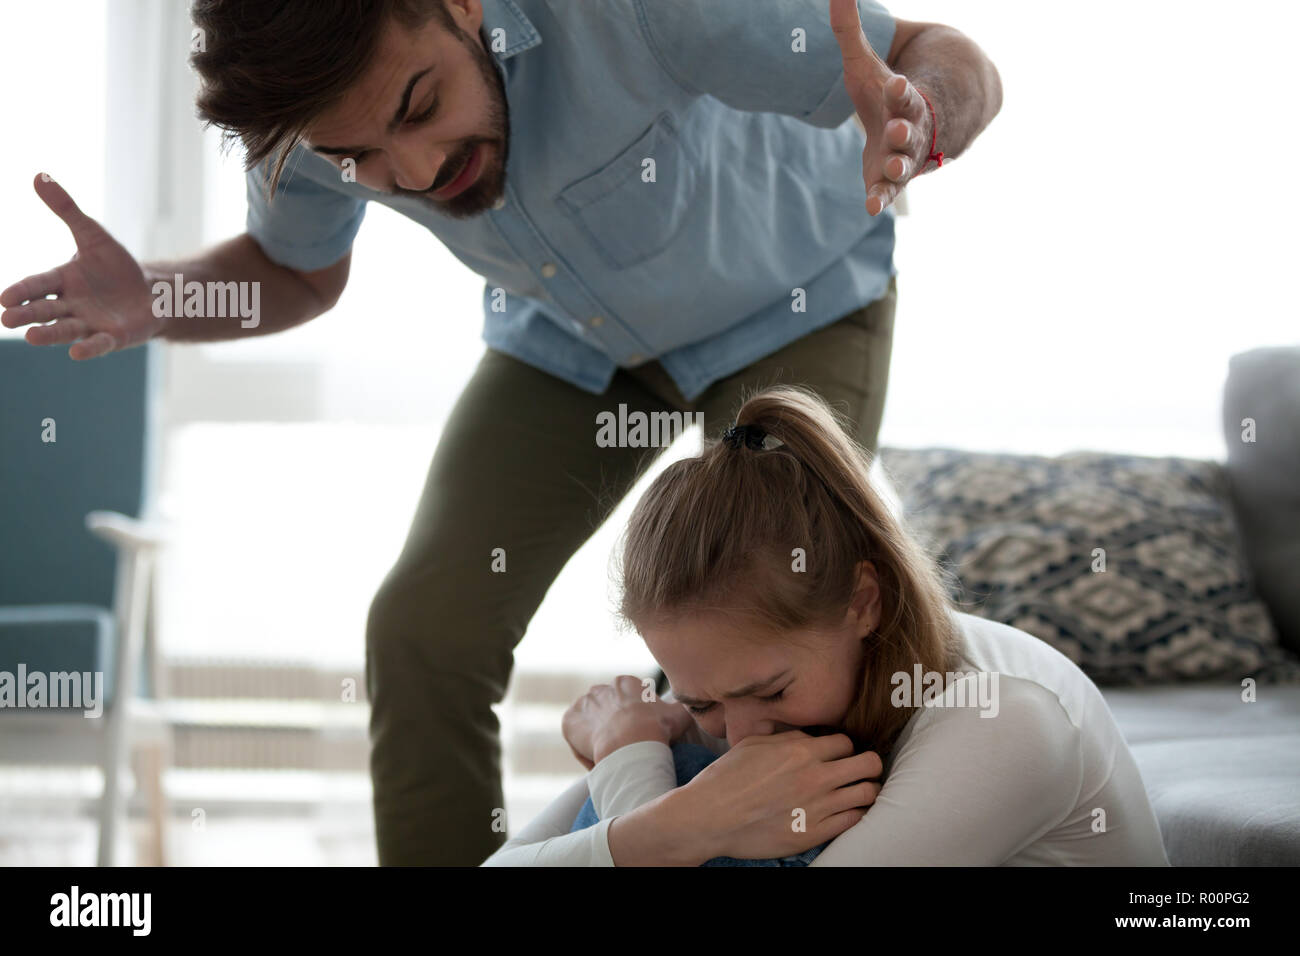 Angry man and frightened woman at home - Stock Image